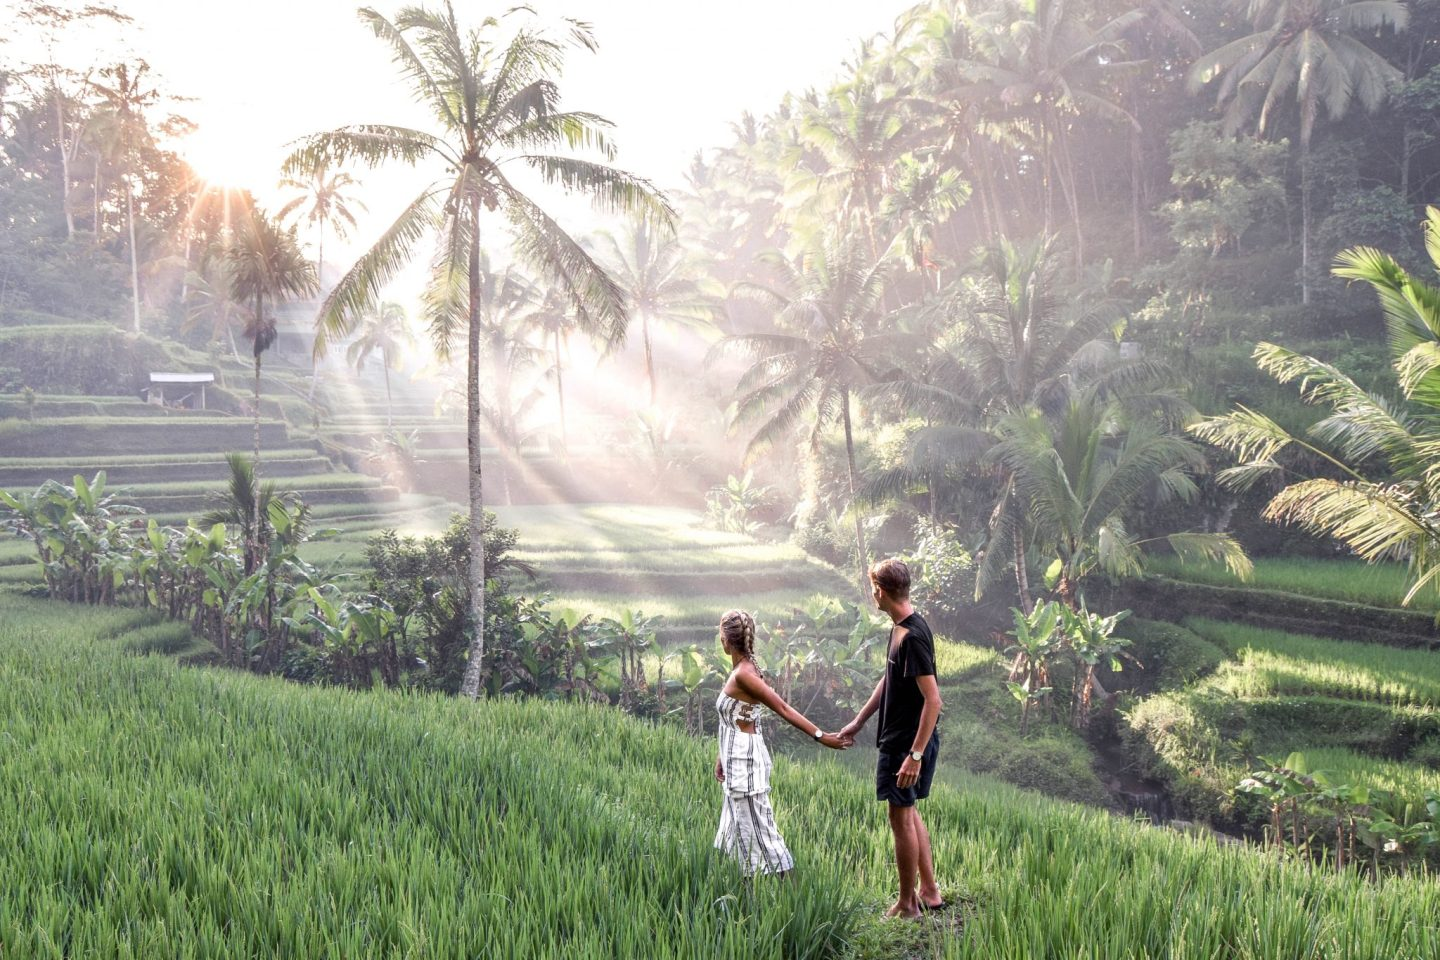 Wanderers & Warriors - Charlie & Lauren UK Travel Couple - The Magical Tegalalang Rice Terraces Ubud Bali - Tegalalang Rice Terrace - Tegalalang Rice Fields - Tegalalang Rice Terrace Entrance Fee